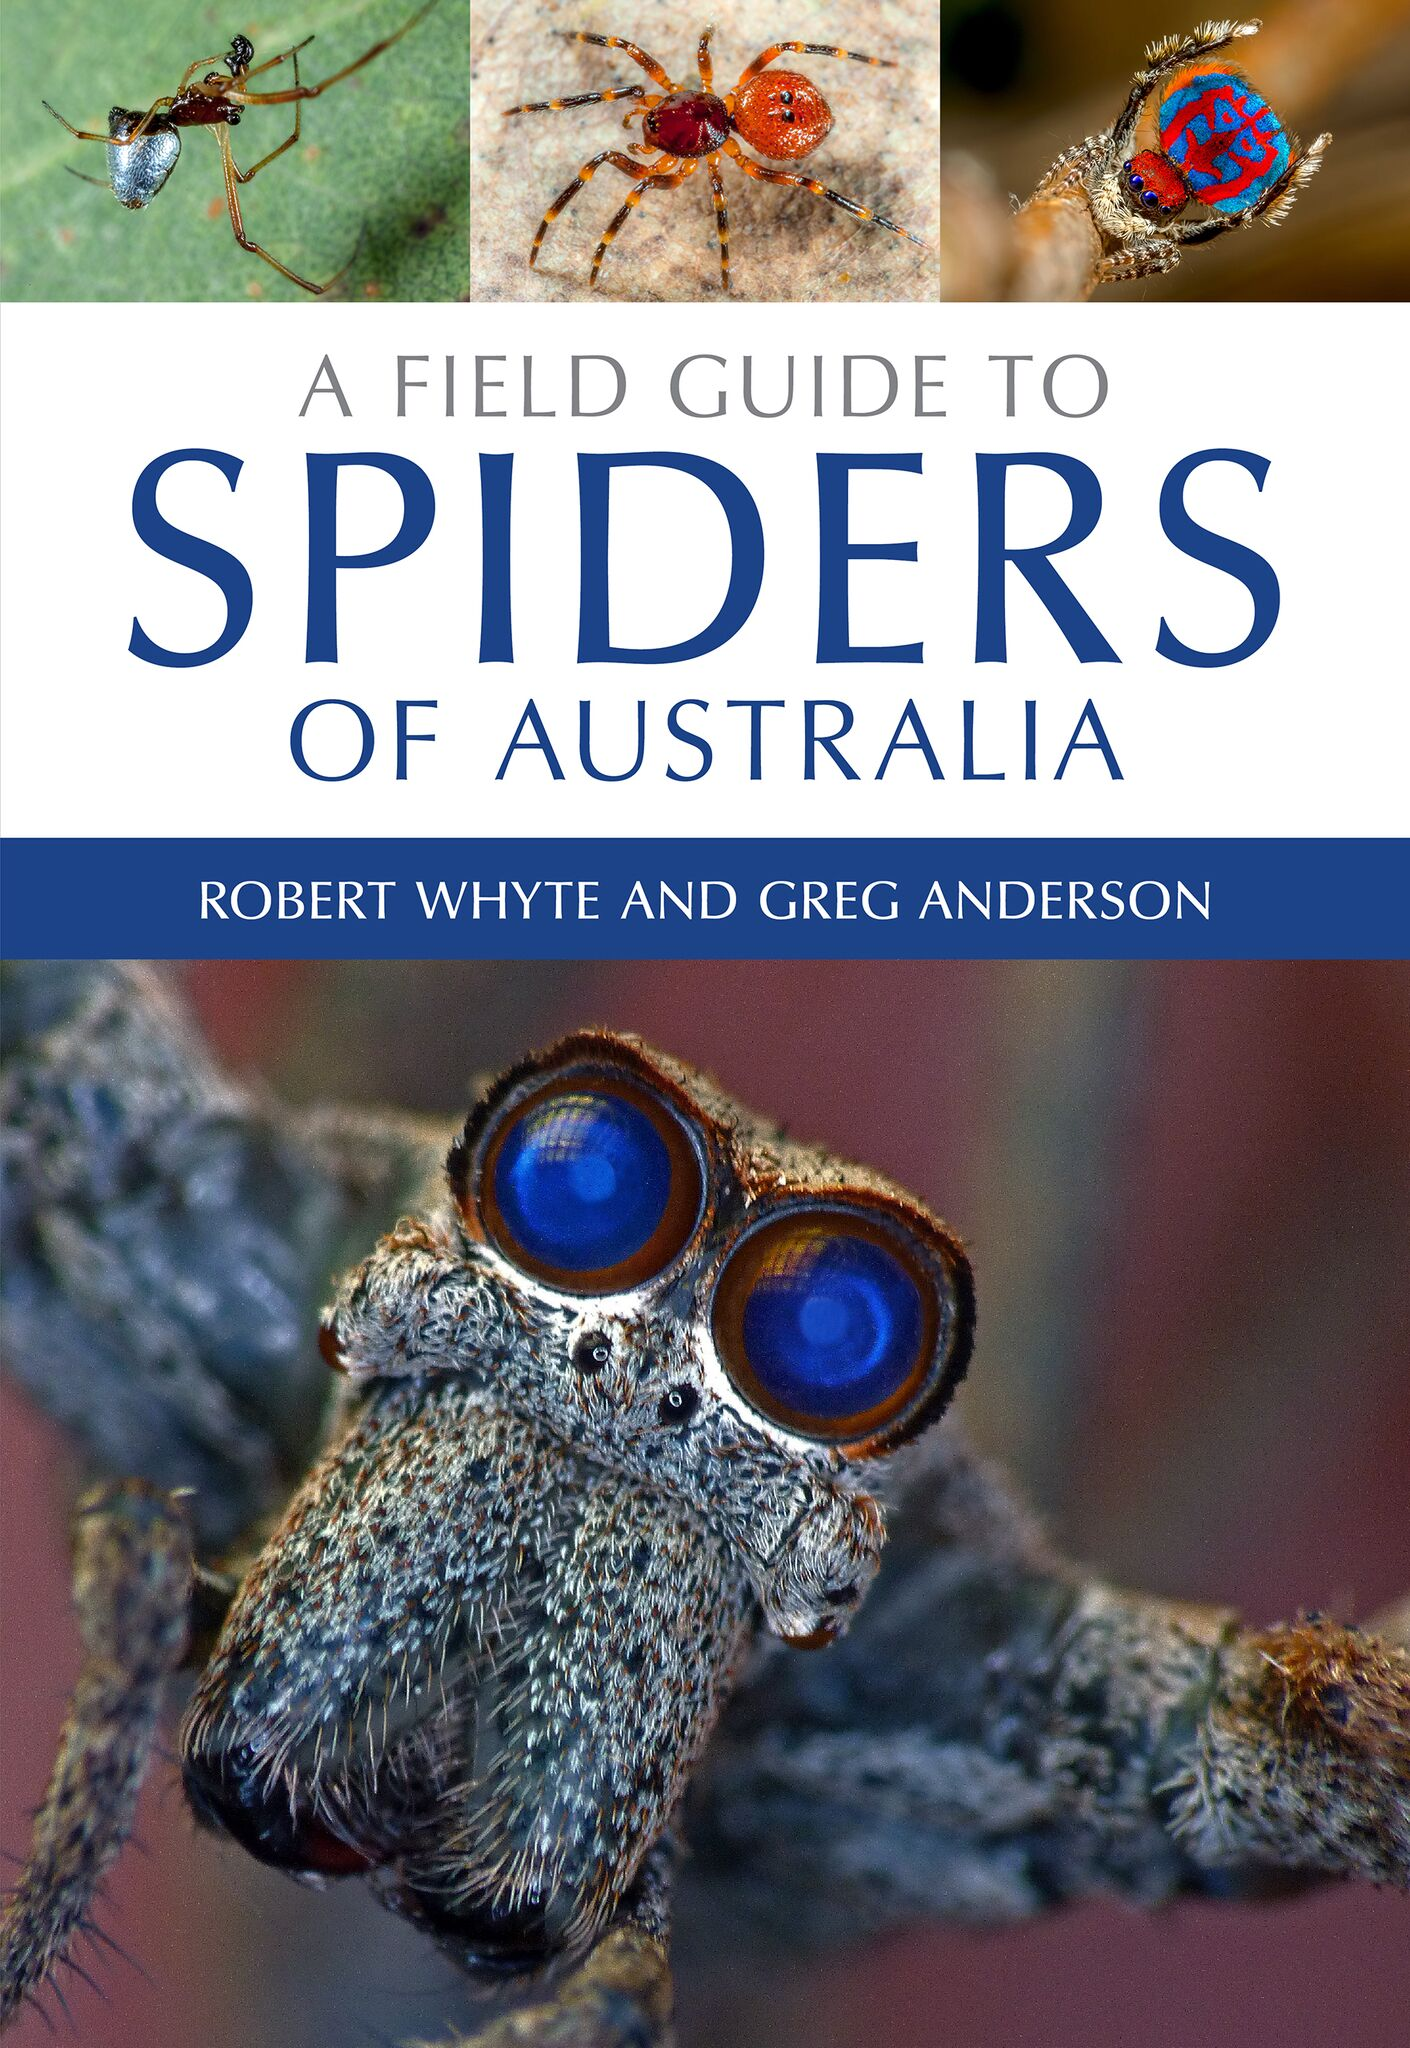 a field guide to spiders of australia pdf